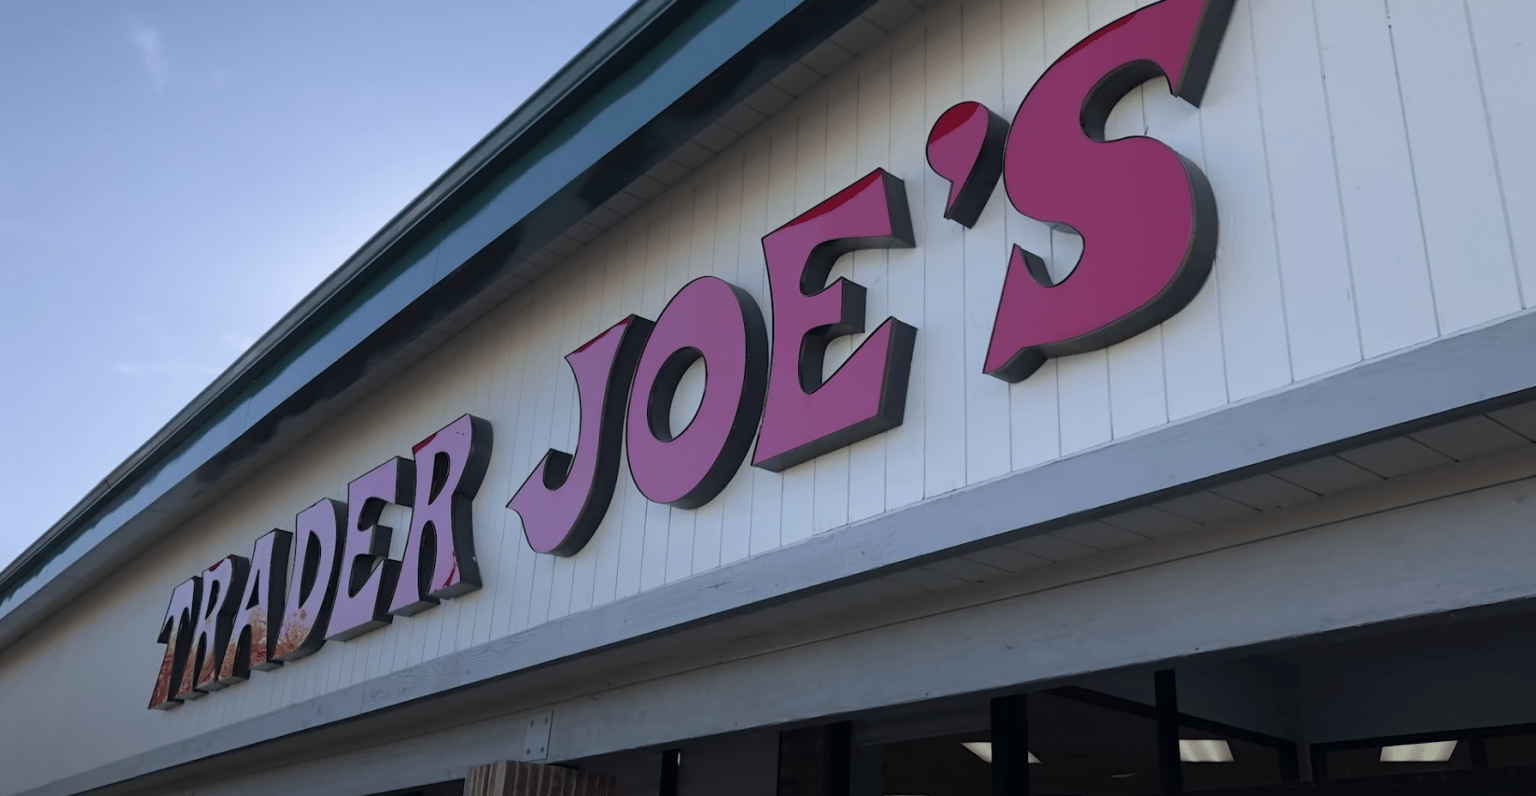 Trader Joe's gets attacked by 'cancel culture' - respectfully tells them too friggin' bad